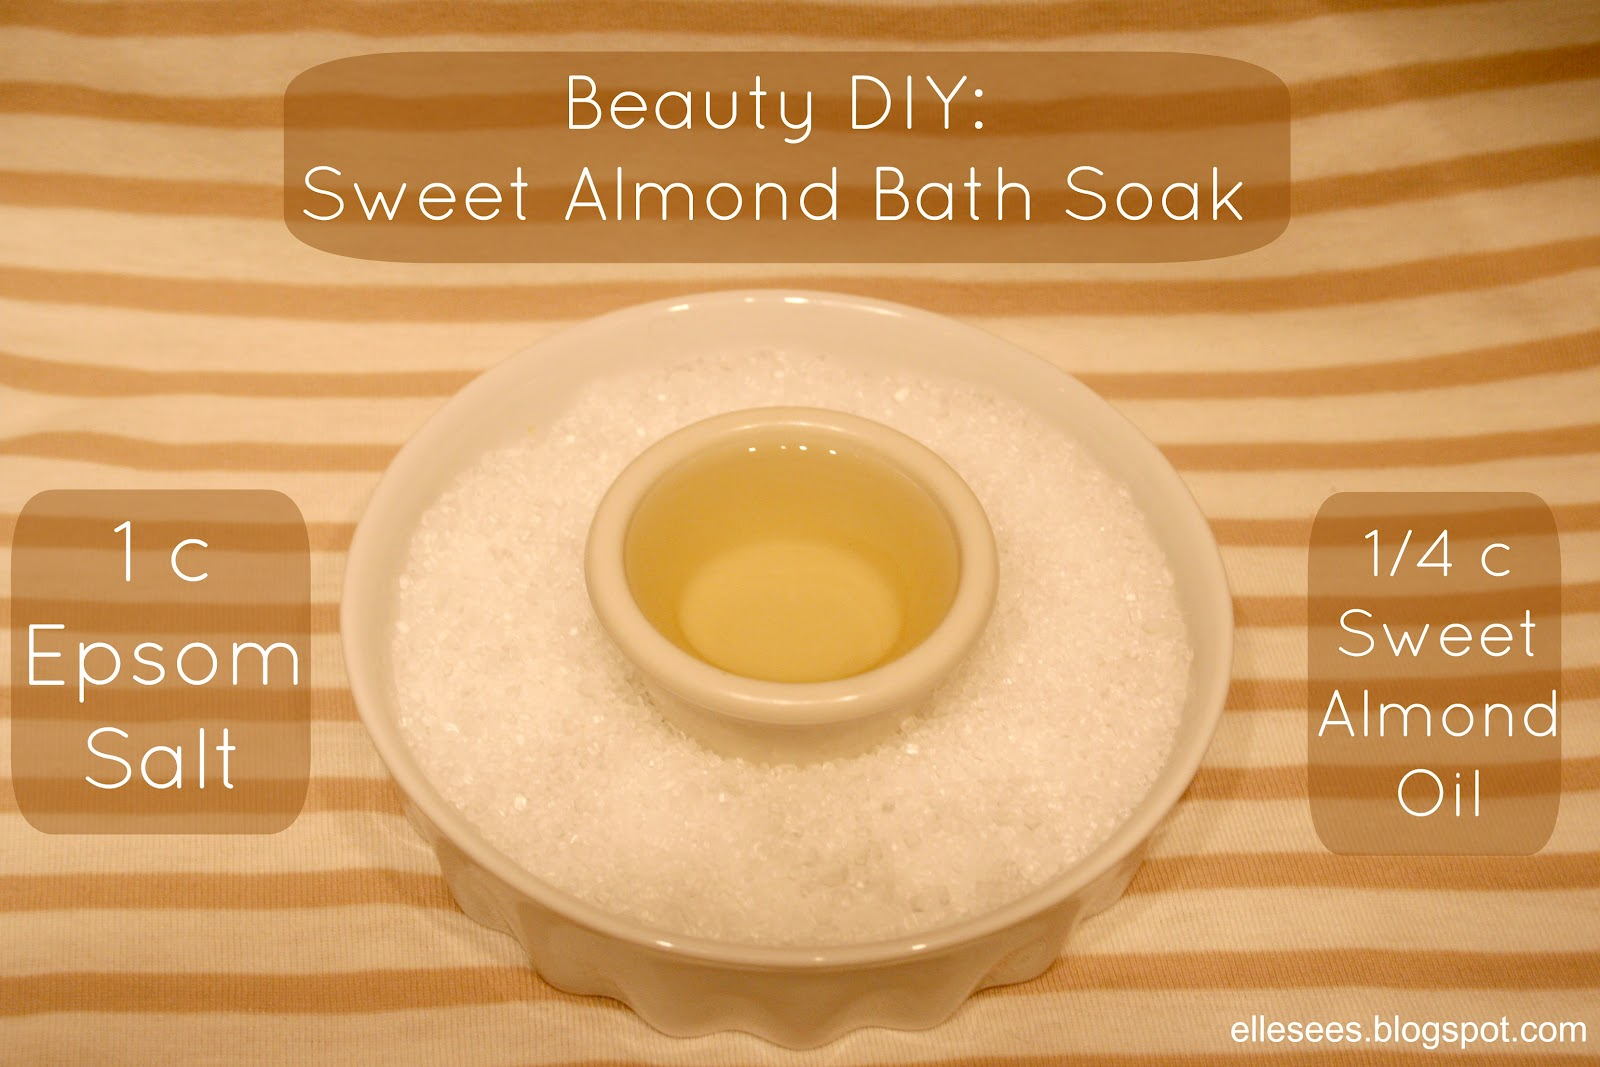 Almond Oil Almond oil is wonderful for